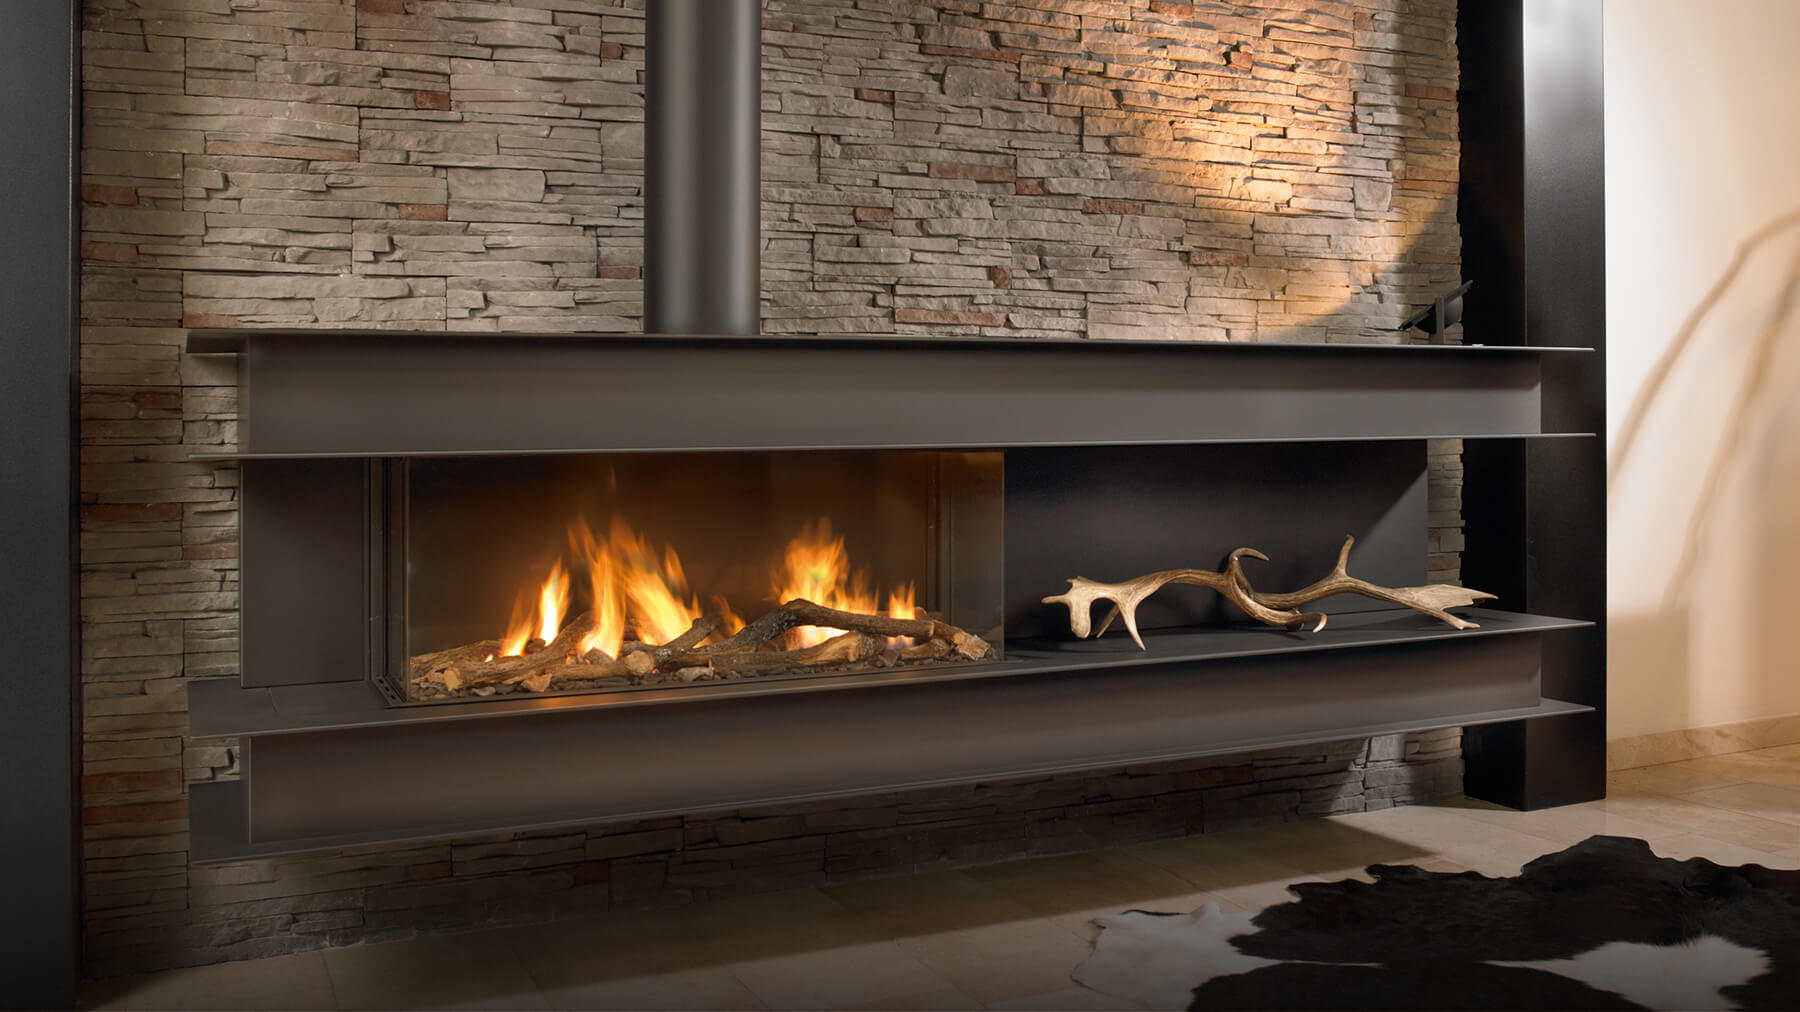 Seno Modern Wall Hung Gas Fire | High Efficiency Gas Fire